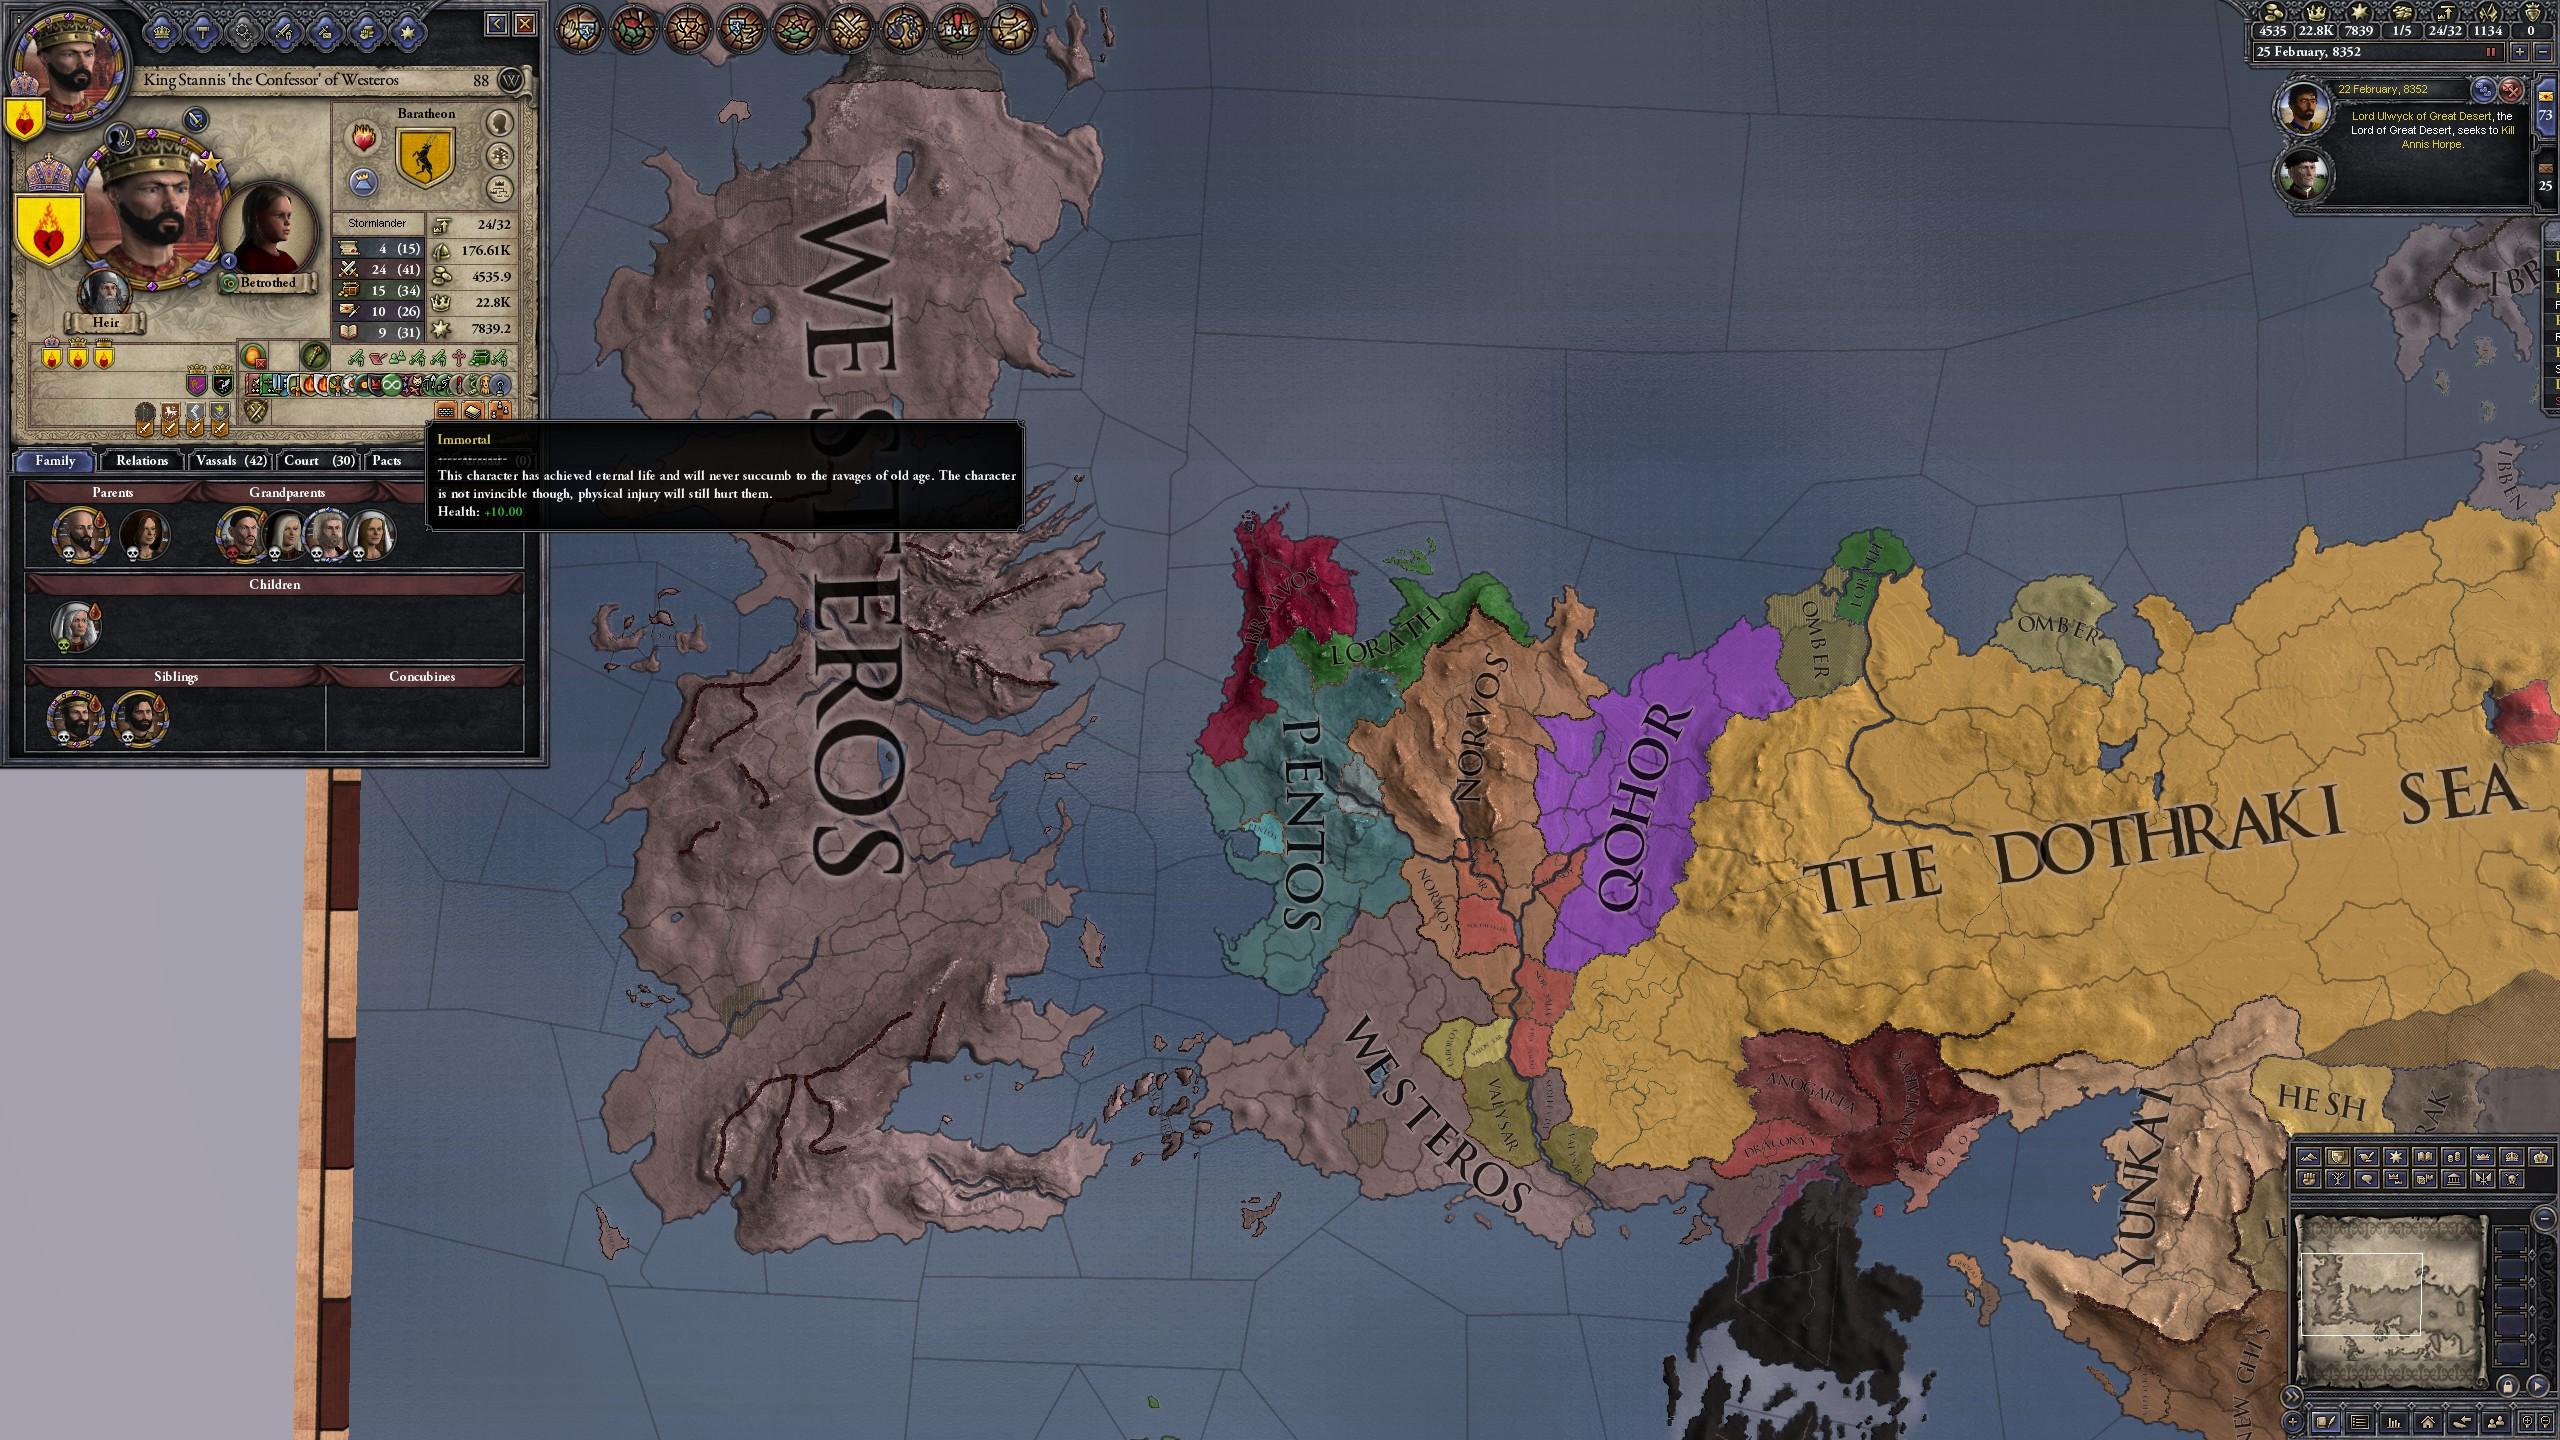 King Stannis the Eternal : CK2GameOfthrones